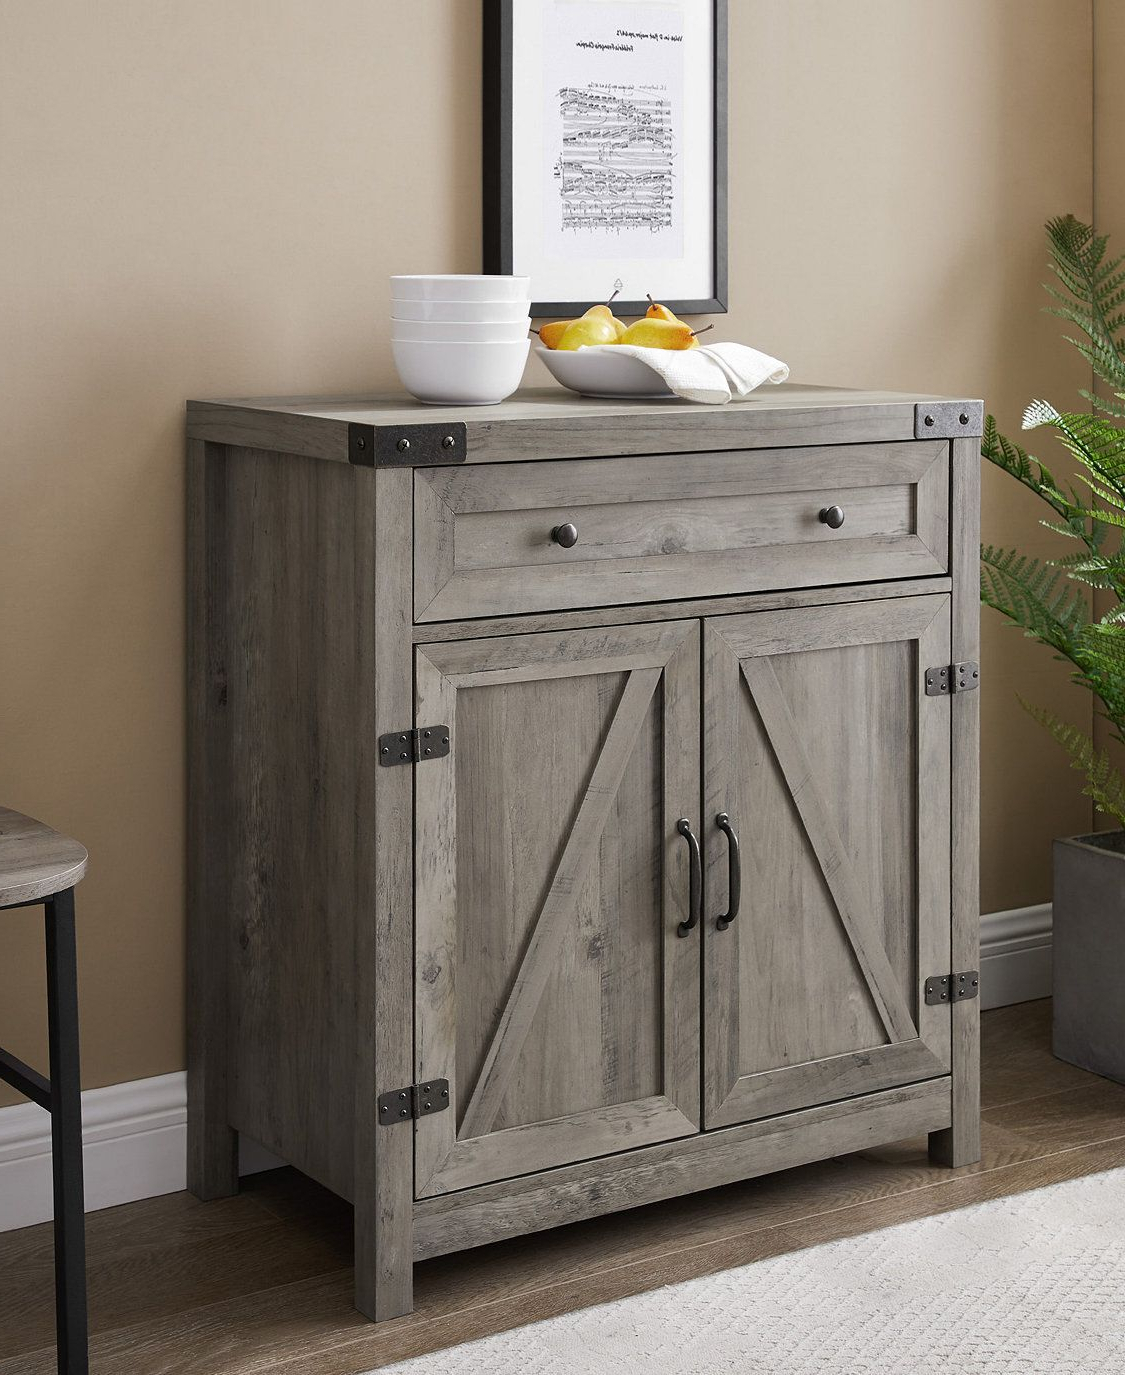 Manor Park Farmhouse Barn Door Accent Cabinet Reclaimed Throughout Woven Paths Farmhouse Barn Door Tv Stands In Multiple Finishes (View 14 of 20)